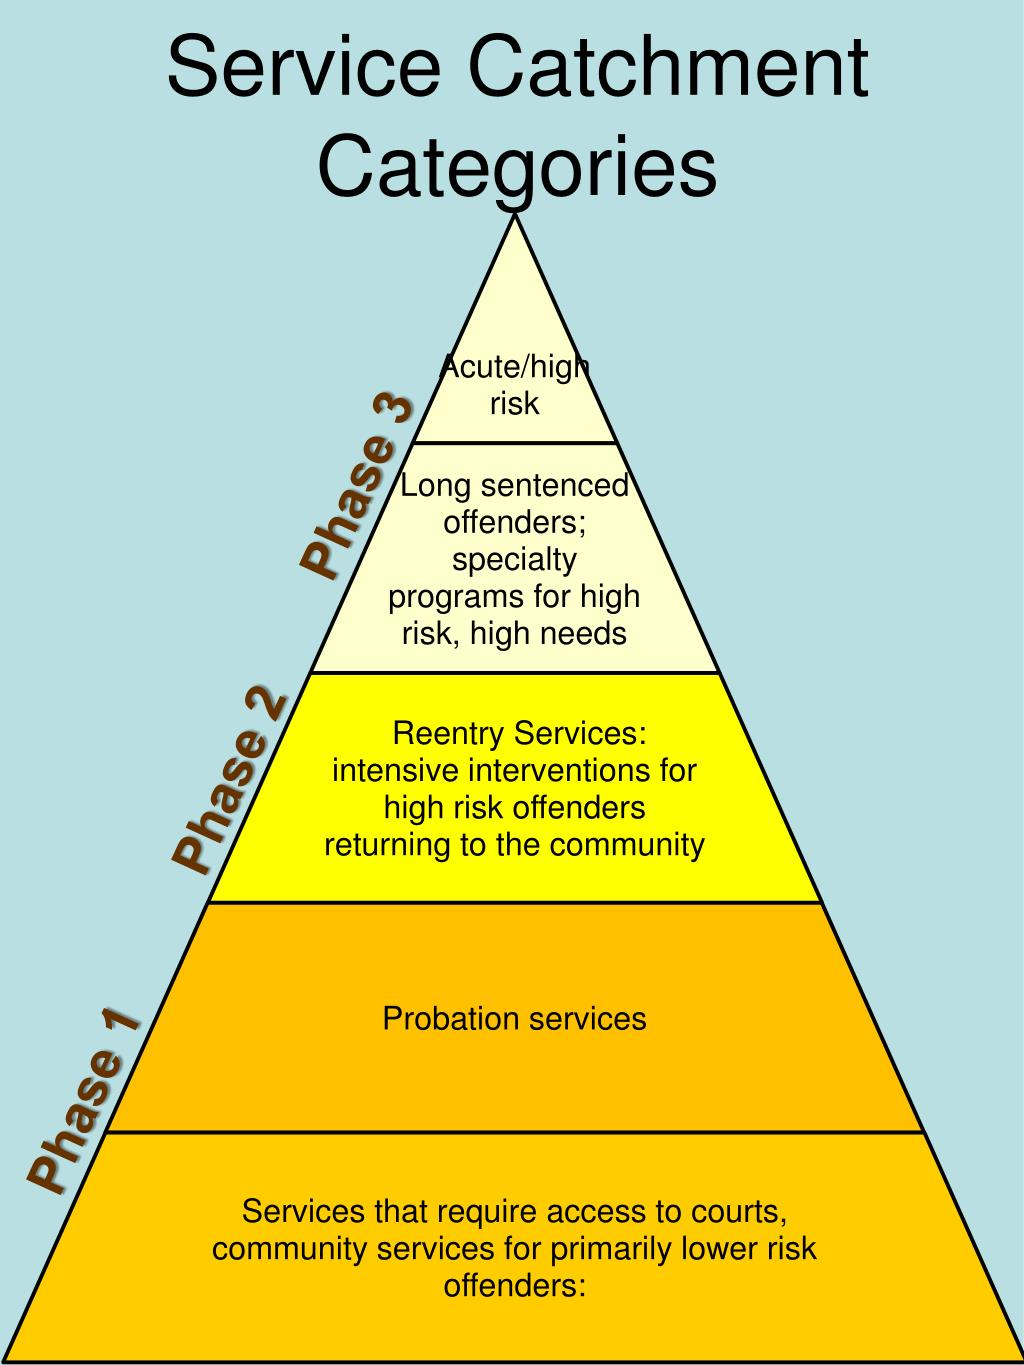 Service Catchment Categories